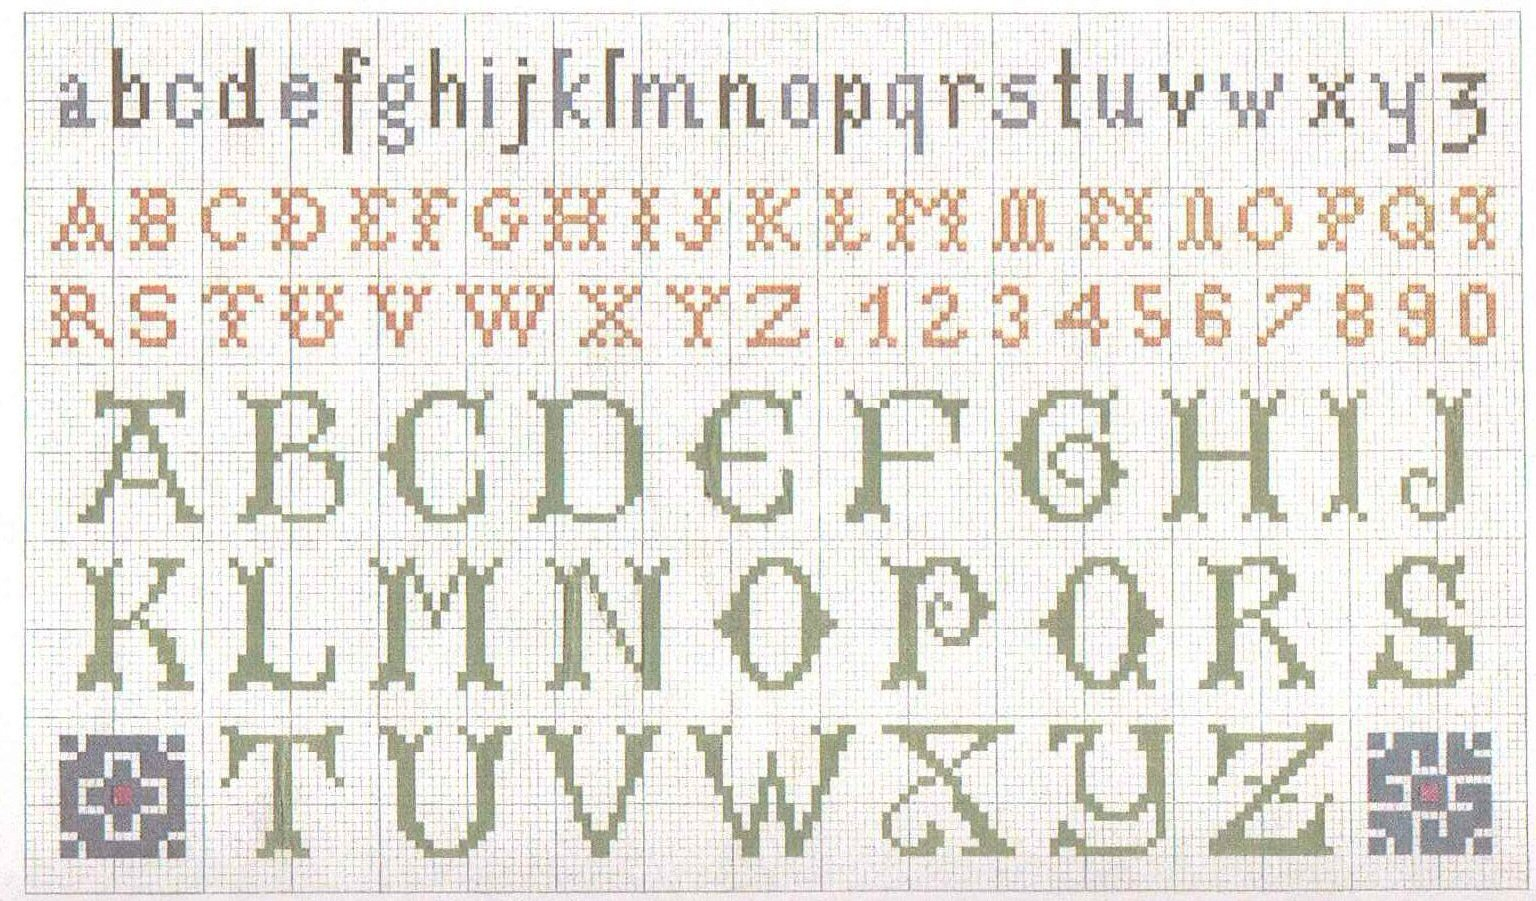 Hand Embroidery Alphabet Patterns Free Free Creative Patterns Motifs Adels Knit Craft